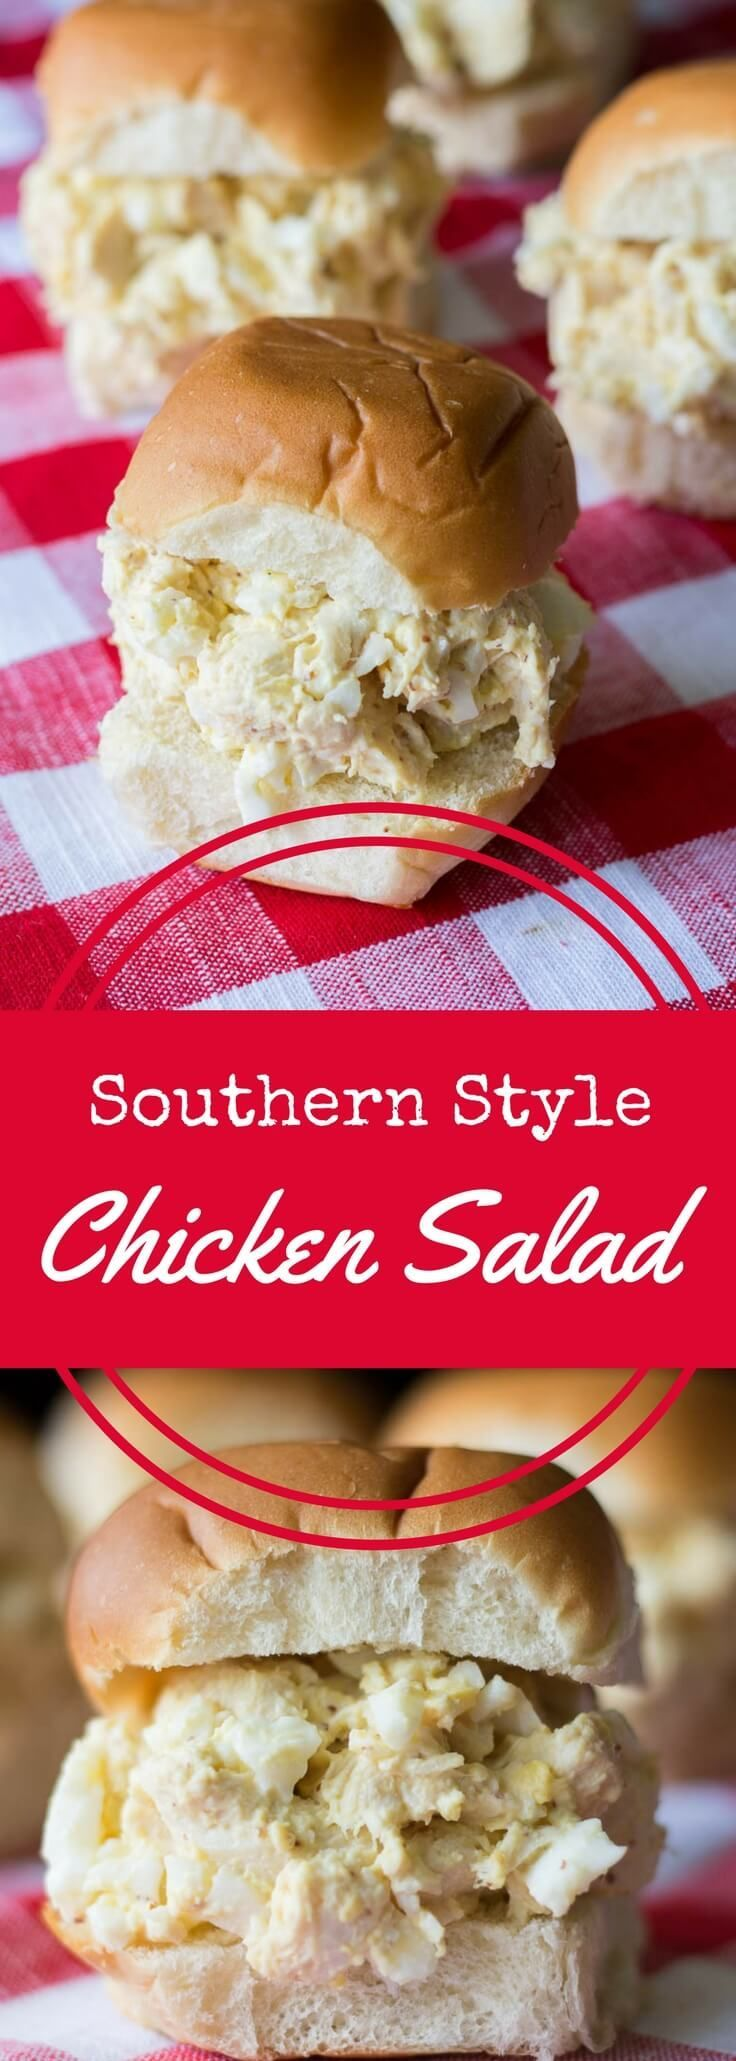 Southern Style Chicken Salad Sandwiches are made with chicken, mayo, coarse ground mustard, and eggs for a rich and satisfying flavor. via @recipeforperfec